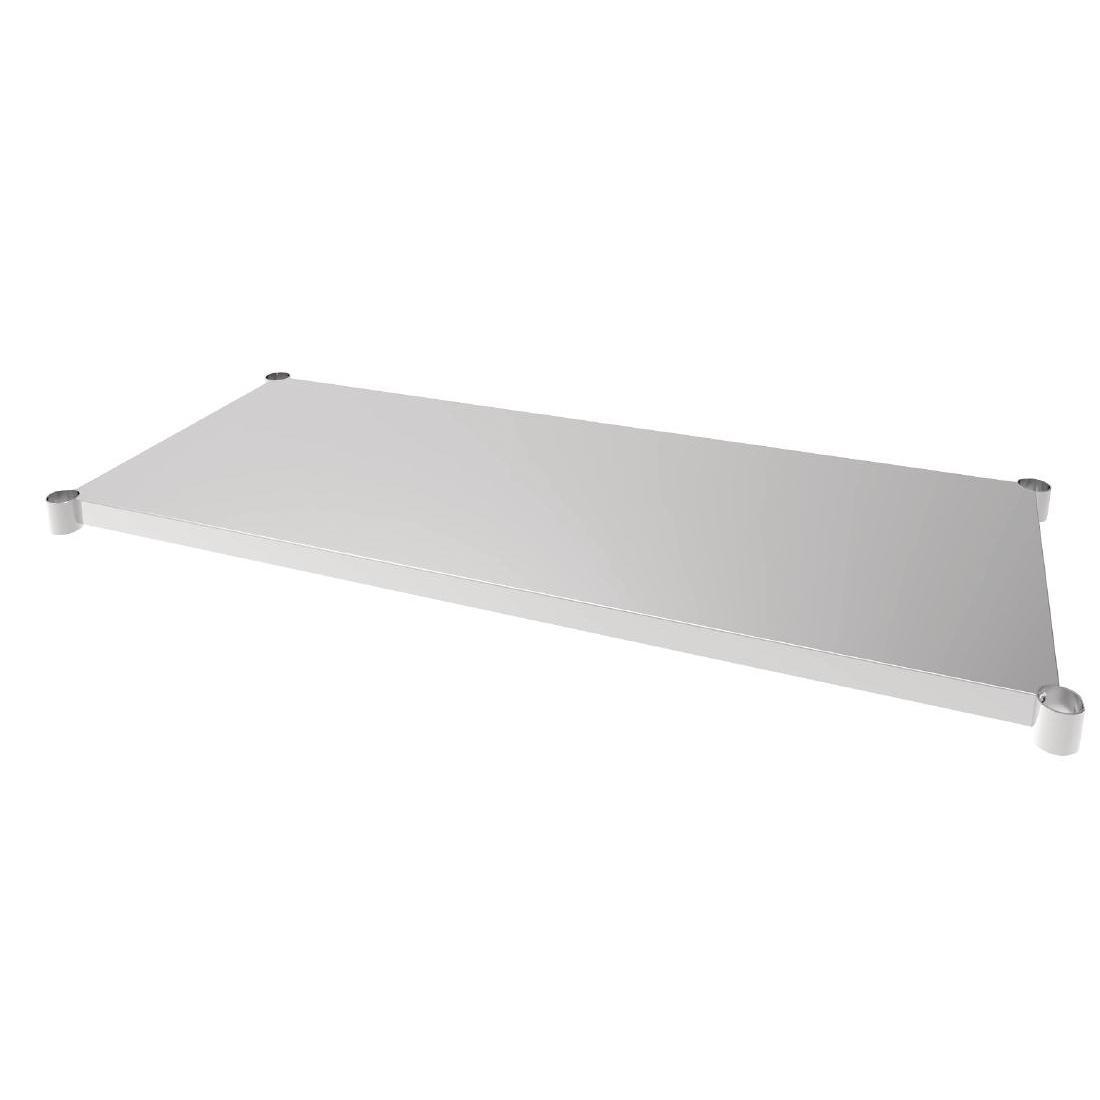 Vogue Stainless Steel Table Shelf 700x1500mm - Each - CP838